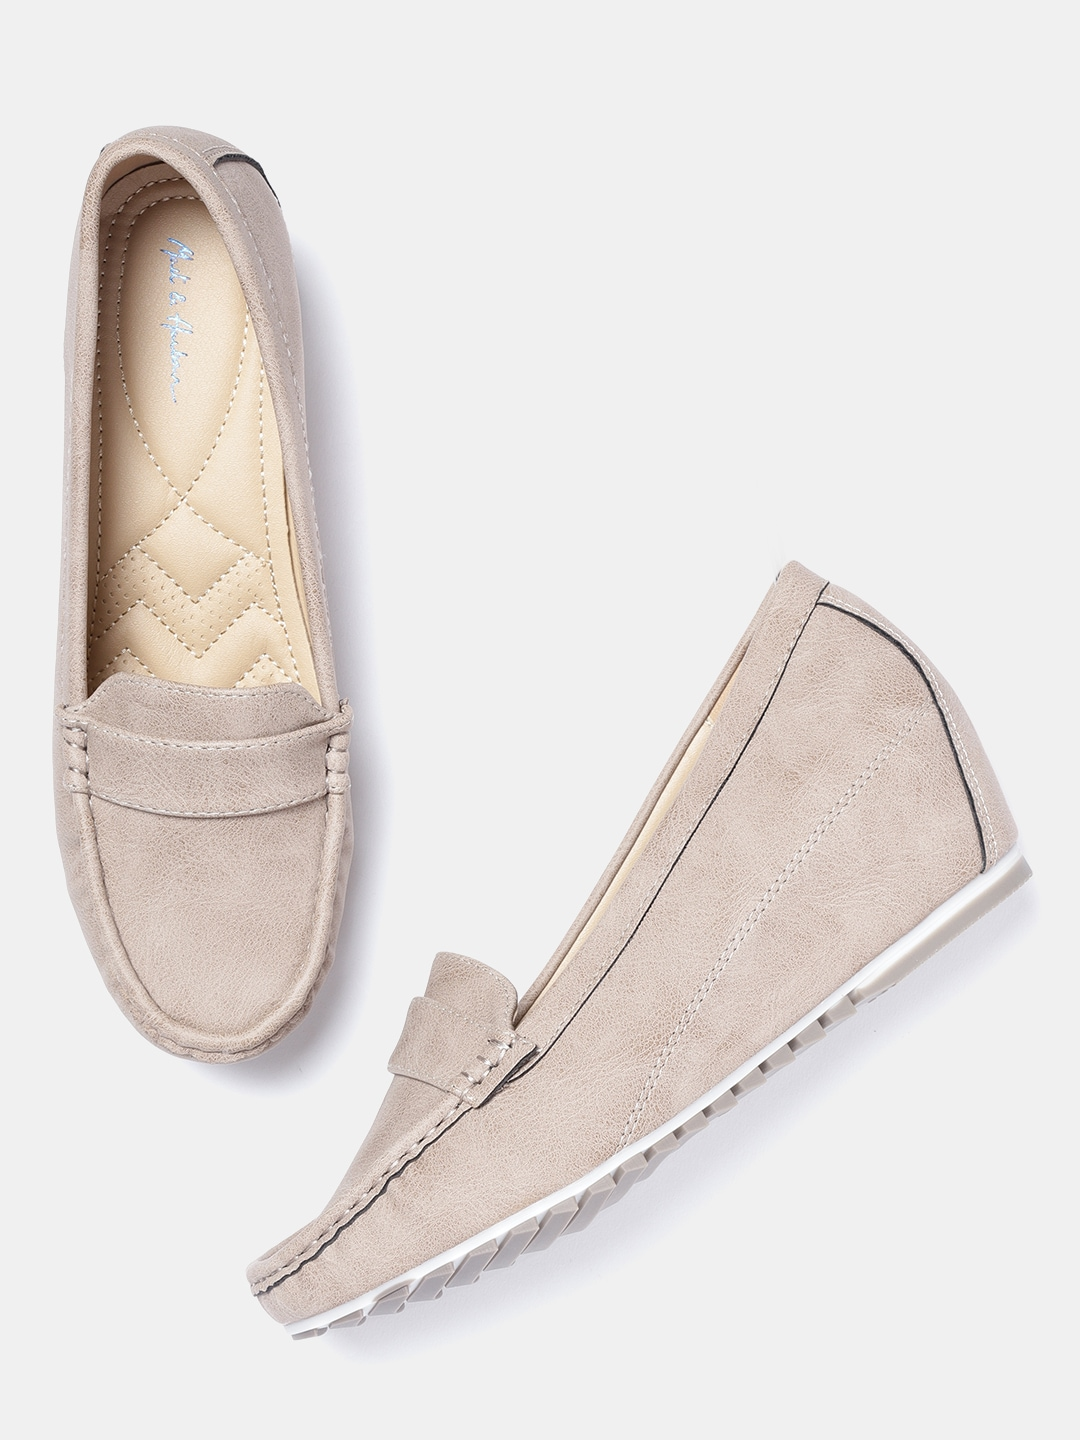 50fc16c28c1f6b Pumps Shoes - Buy Pump Shoes for Women Online at Myntra